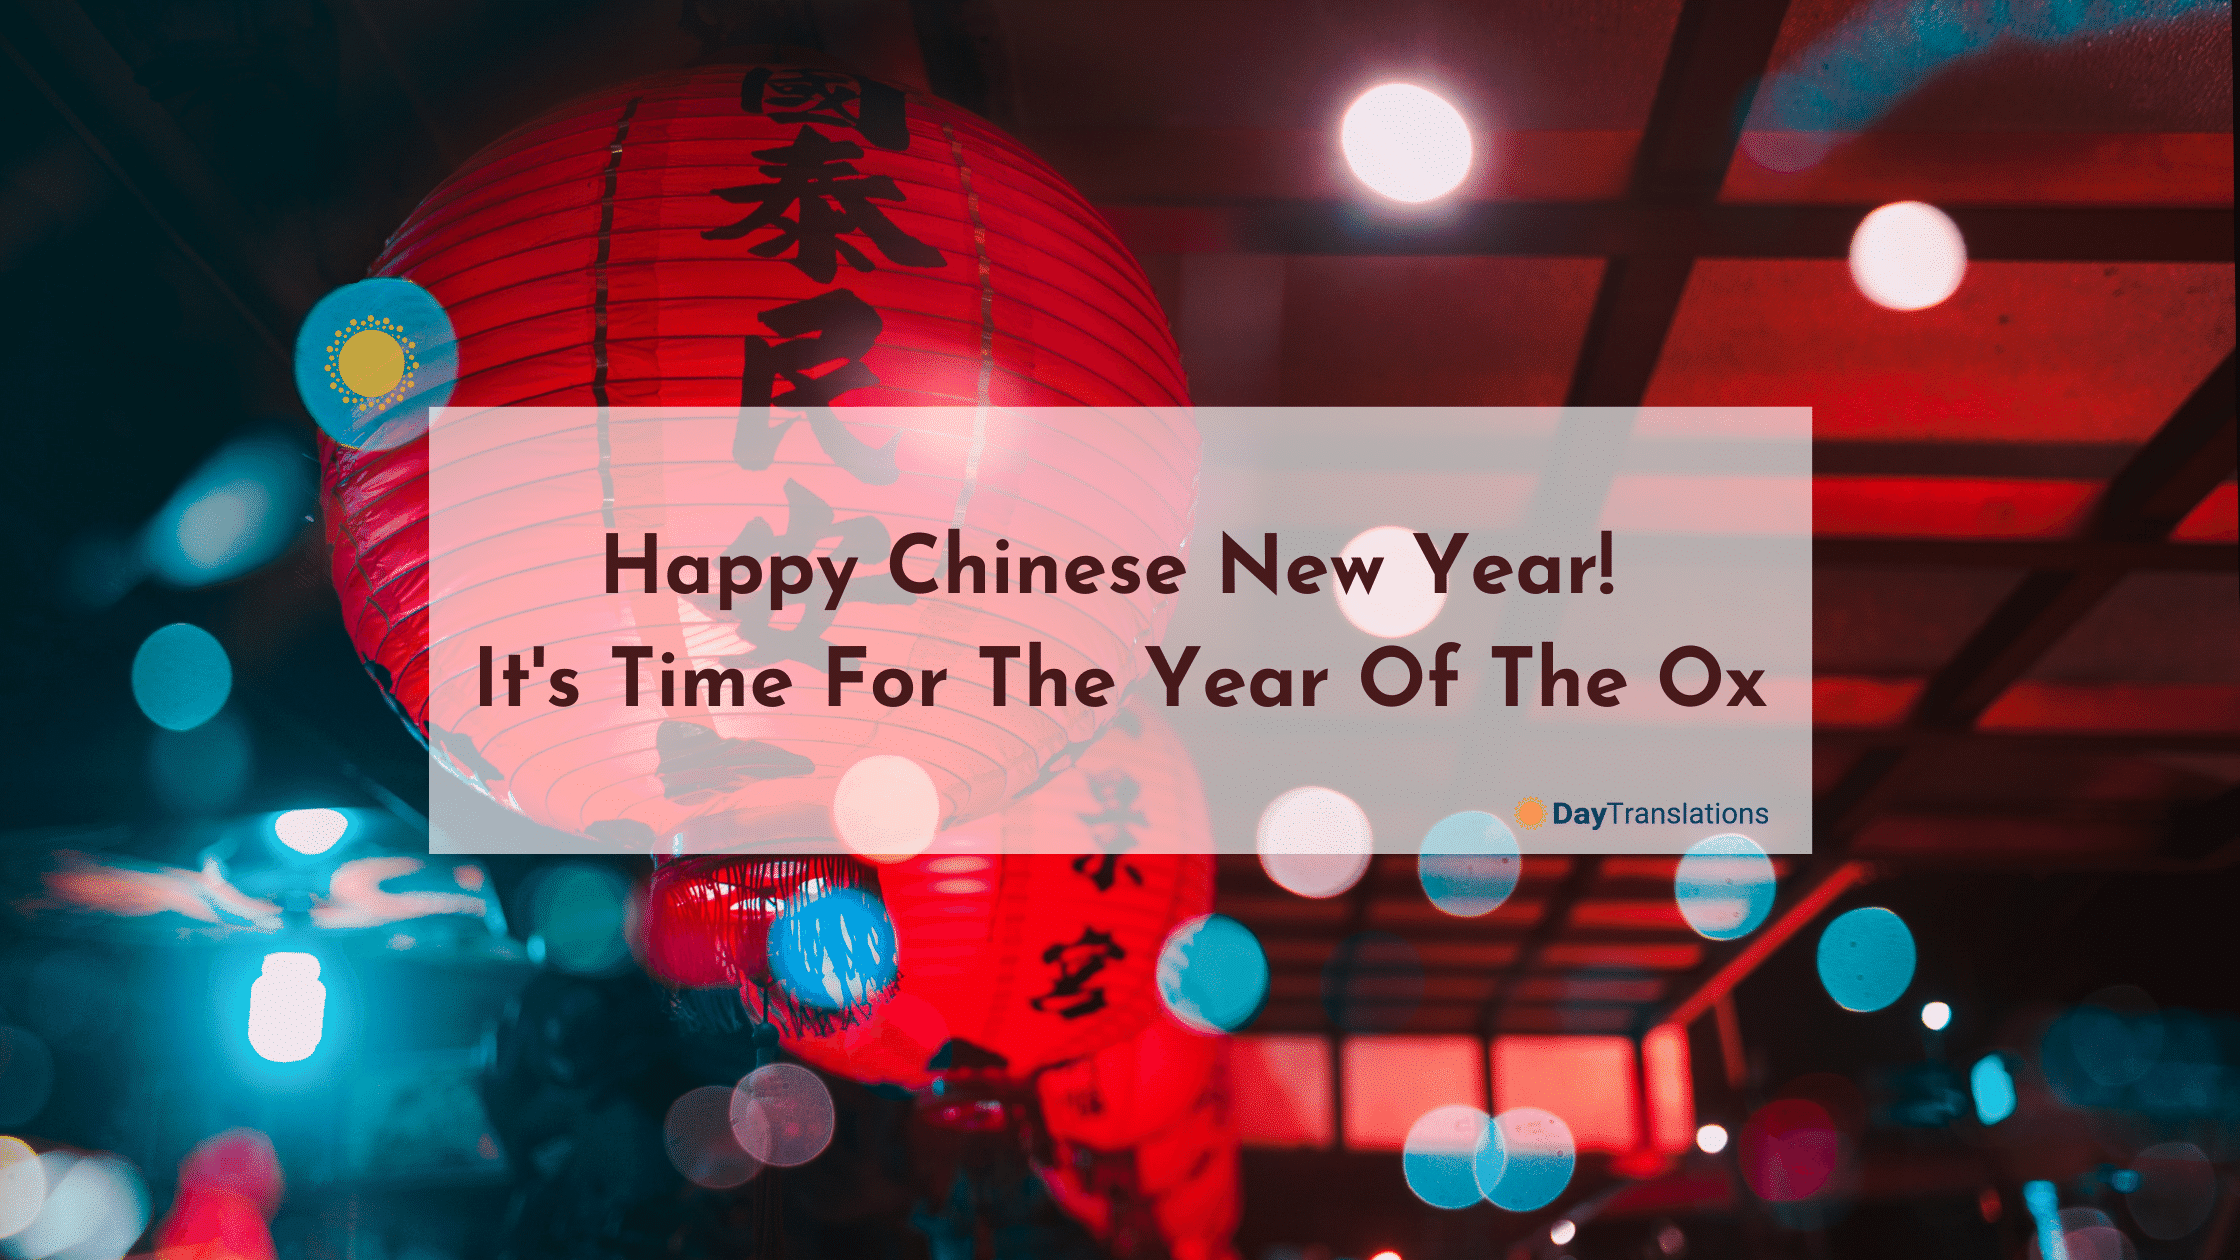 Happy Chinese New Year! It's Time For The Year Of The Ox